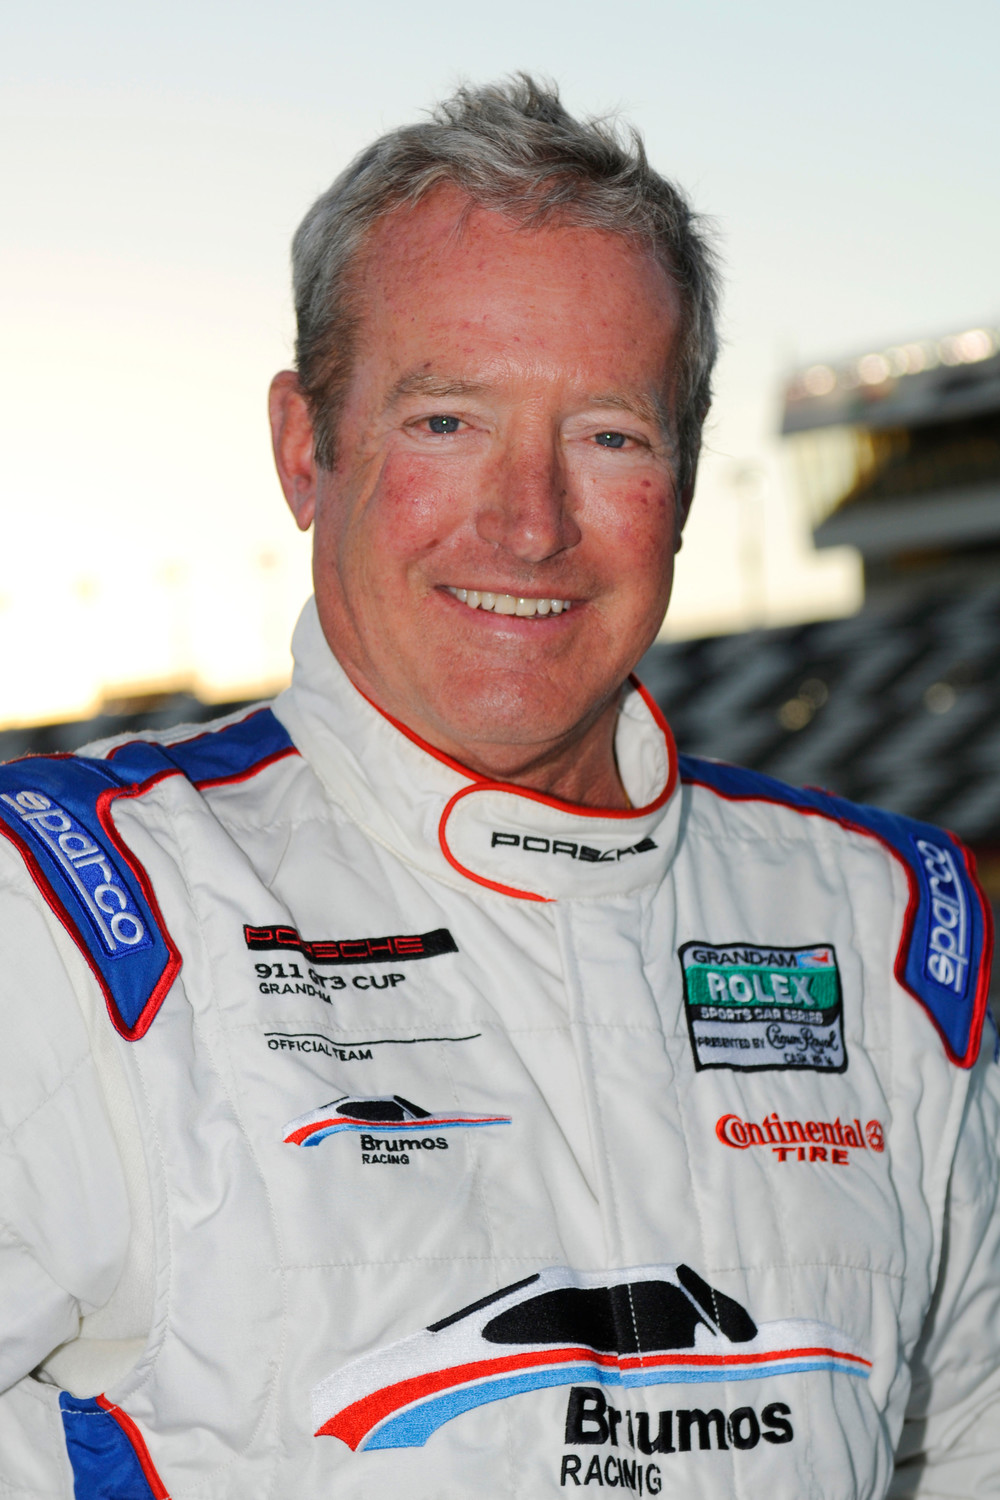 Hurley Haywood will appear at the Ponte Vedra Auto Show on Sunday, Sept. 9 in Nocatee.